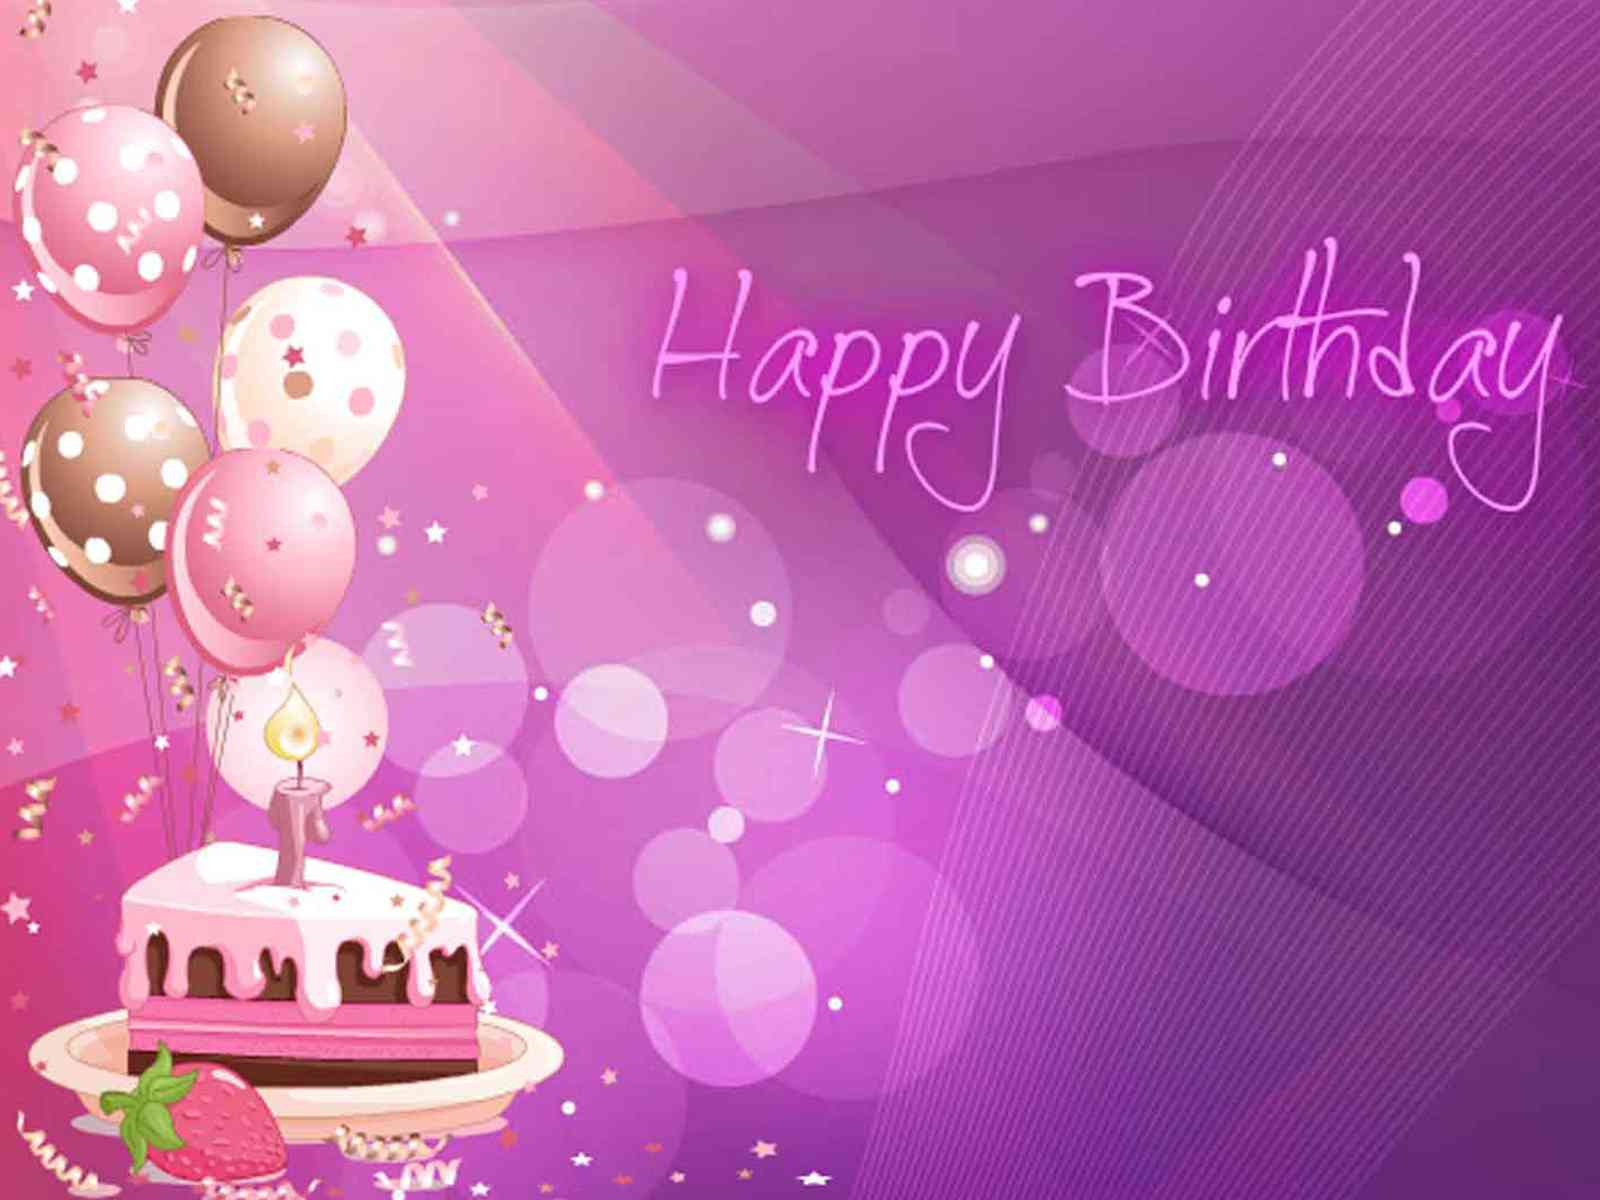 Happy birthday wishes 2015 hd wallpapers and Birthday backgrounds 1600x1200